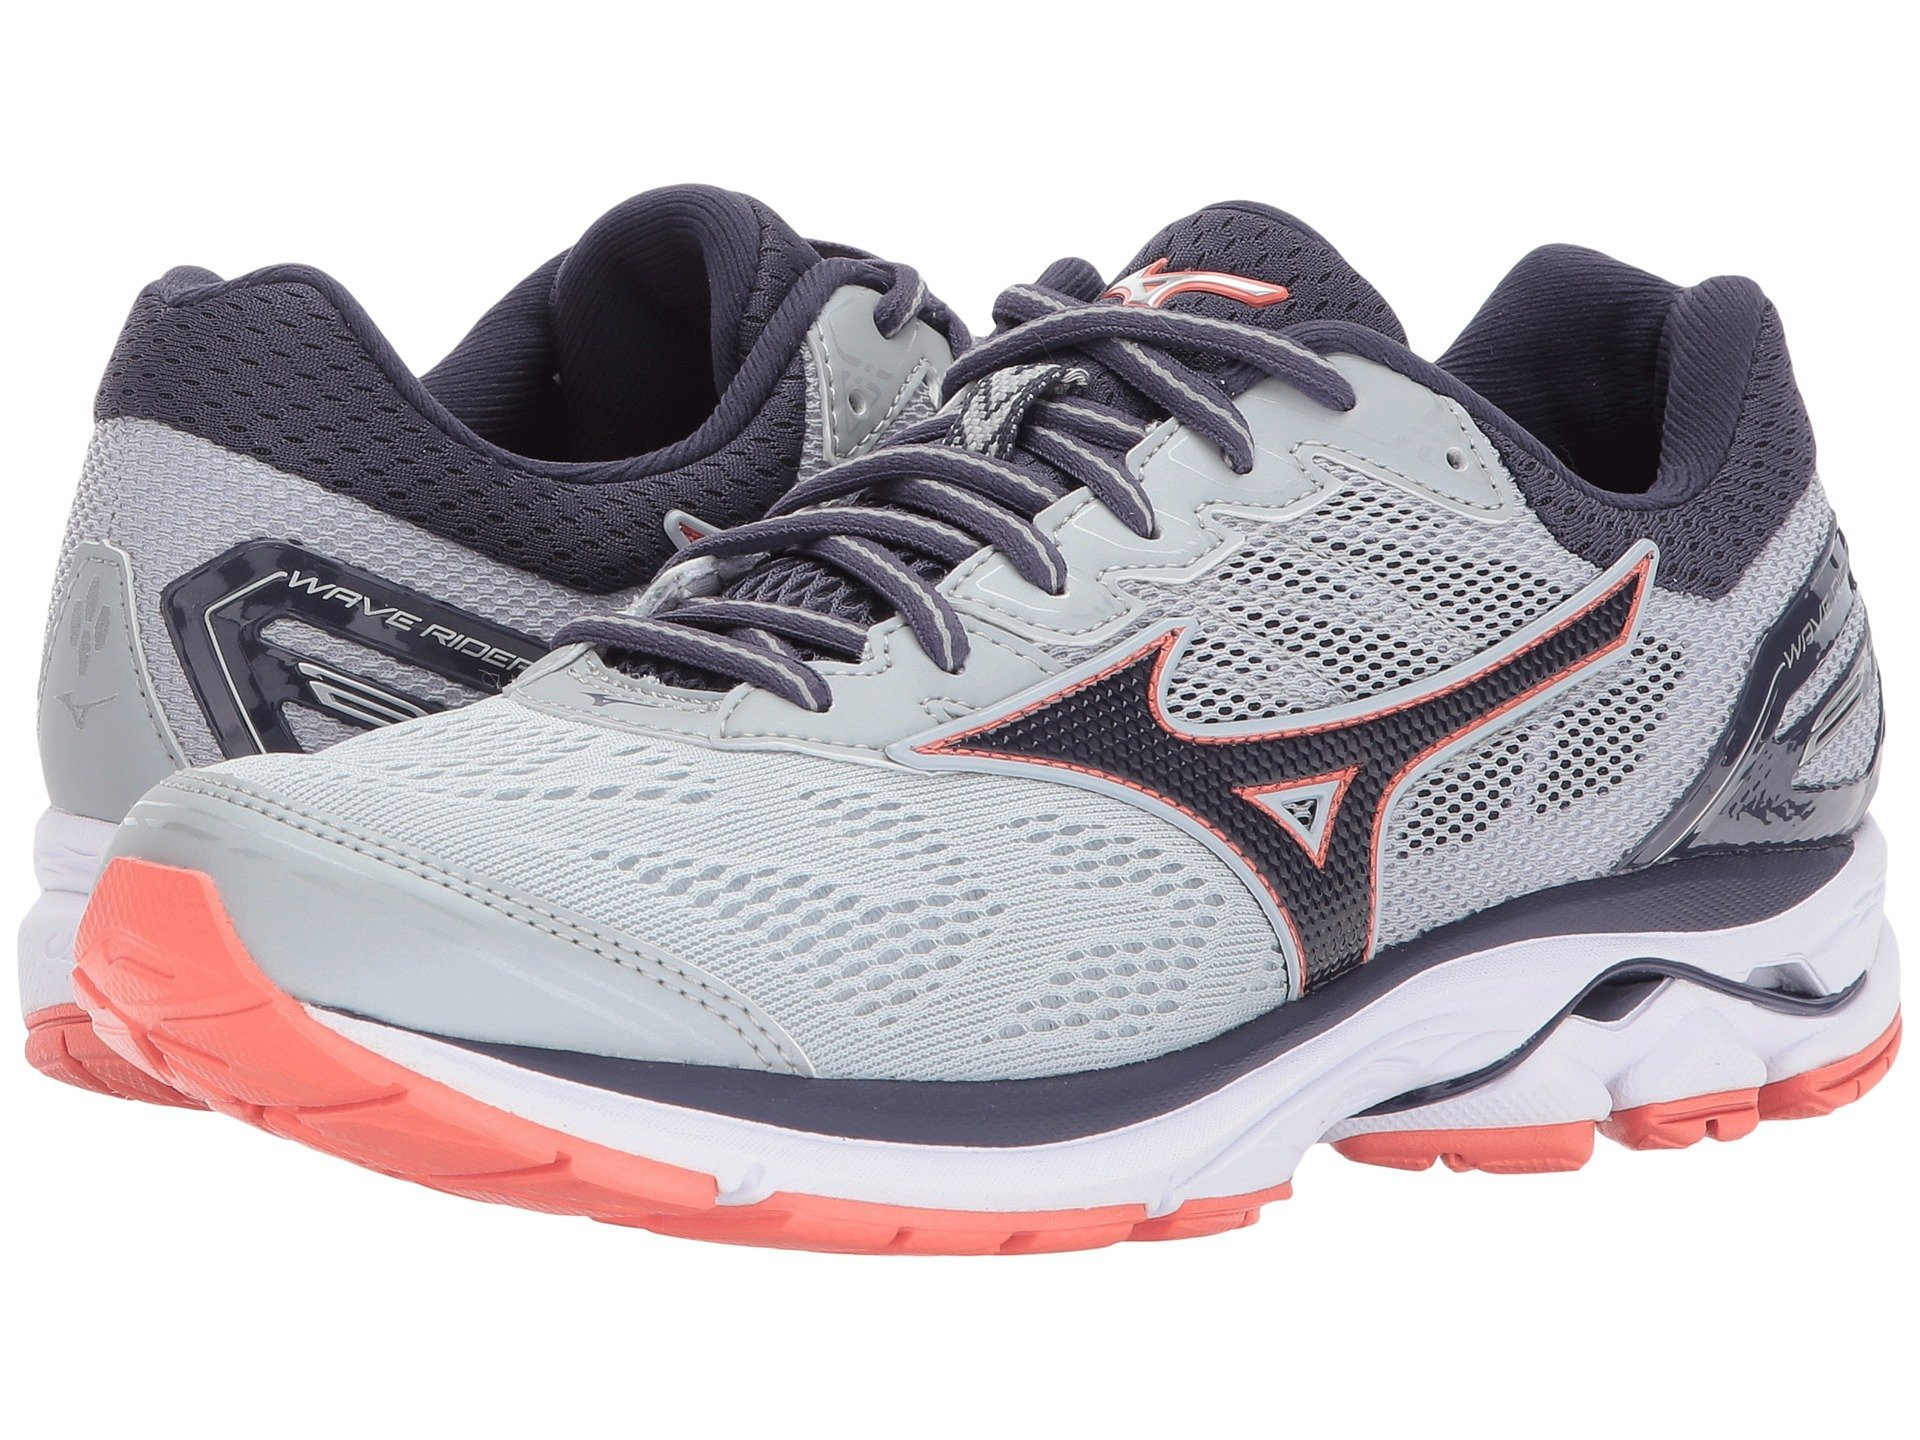 mizuno women's wave rider 21 running shoe india